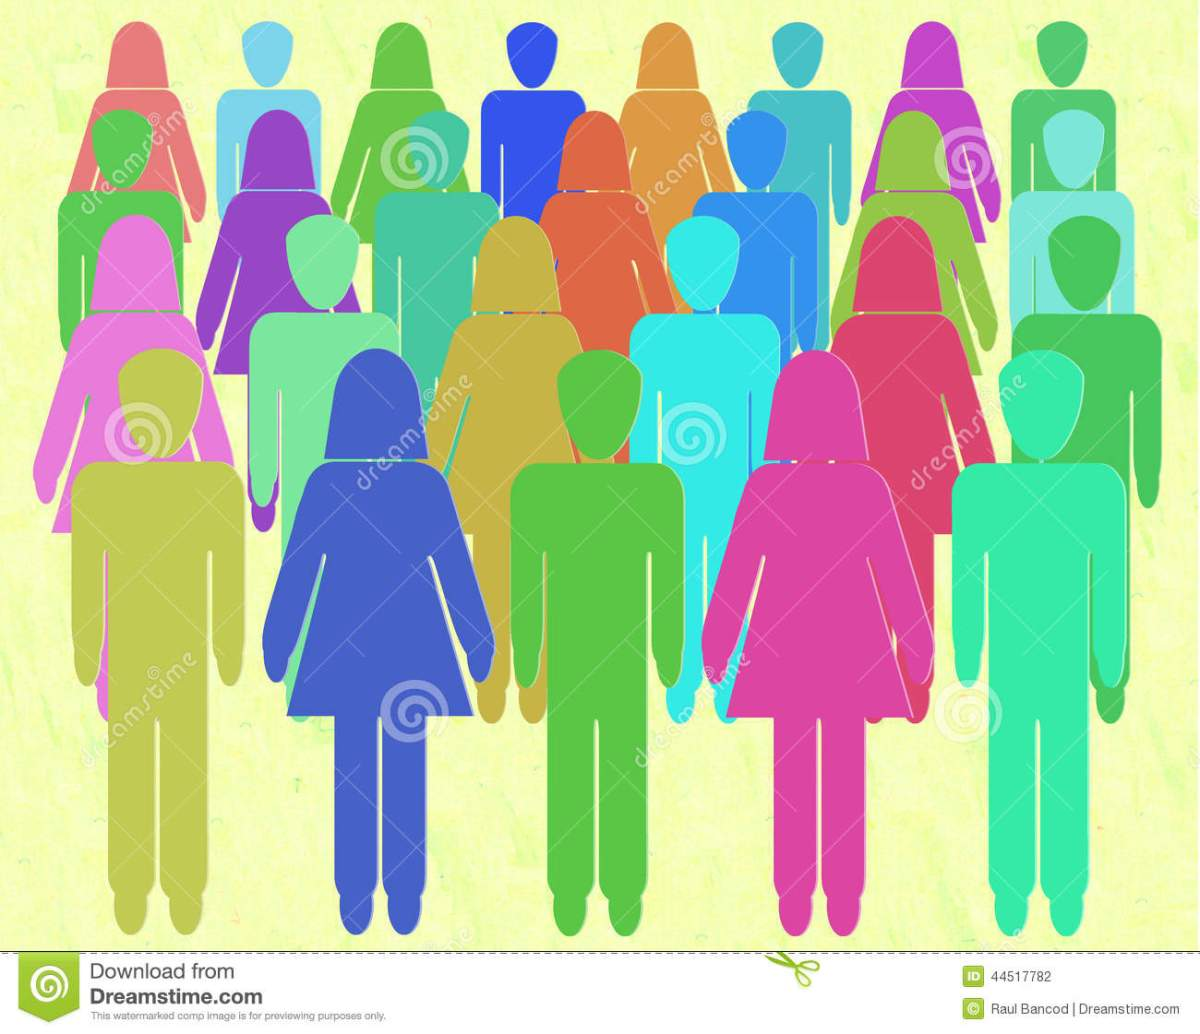 Gender Inequality in Publishing: Women Marginalized, While Men Take theLead